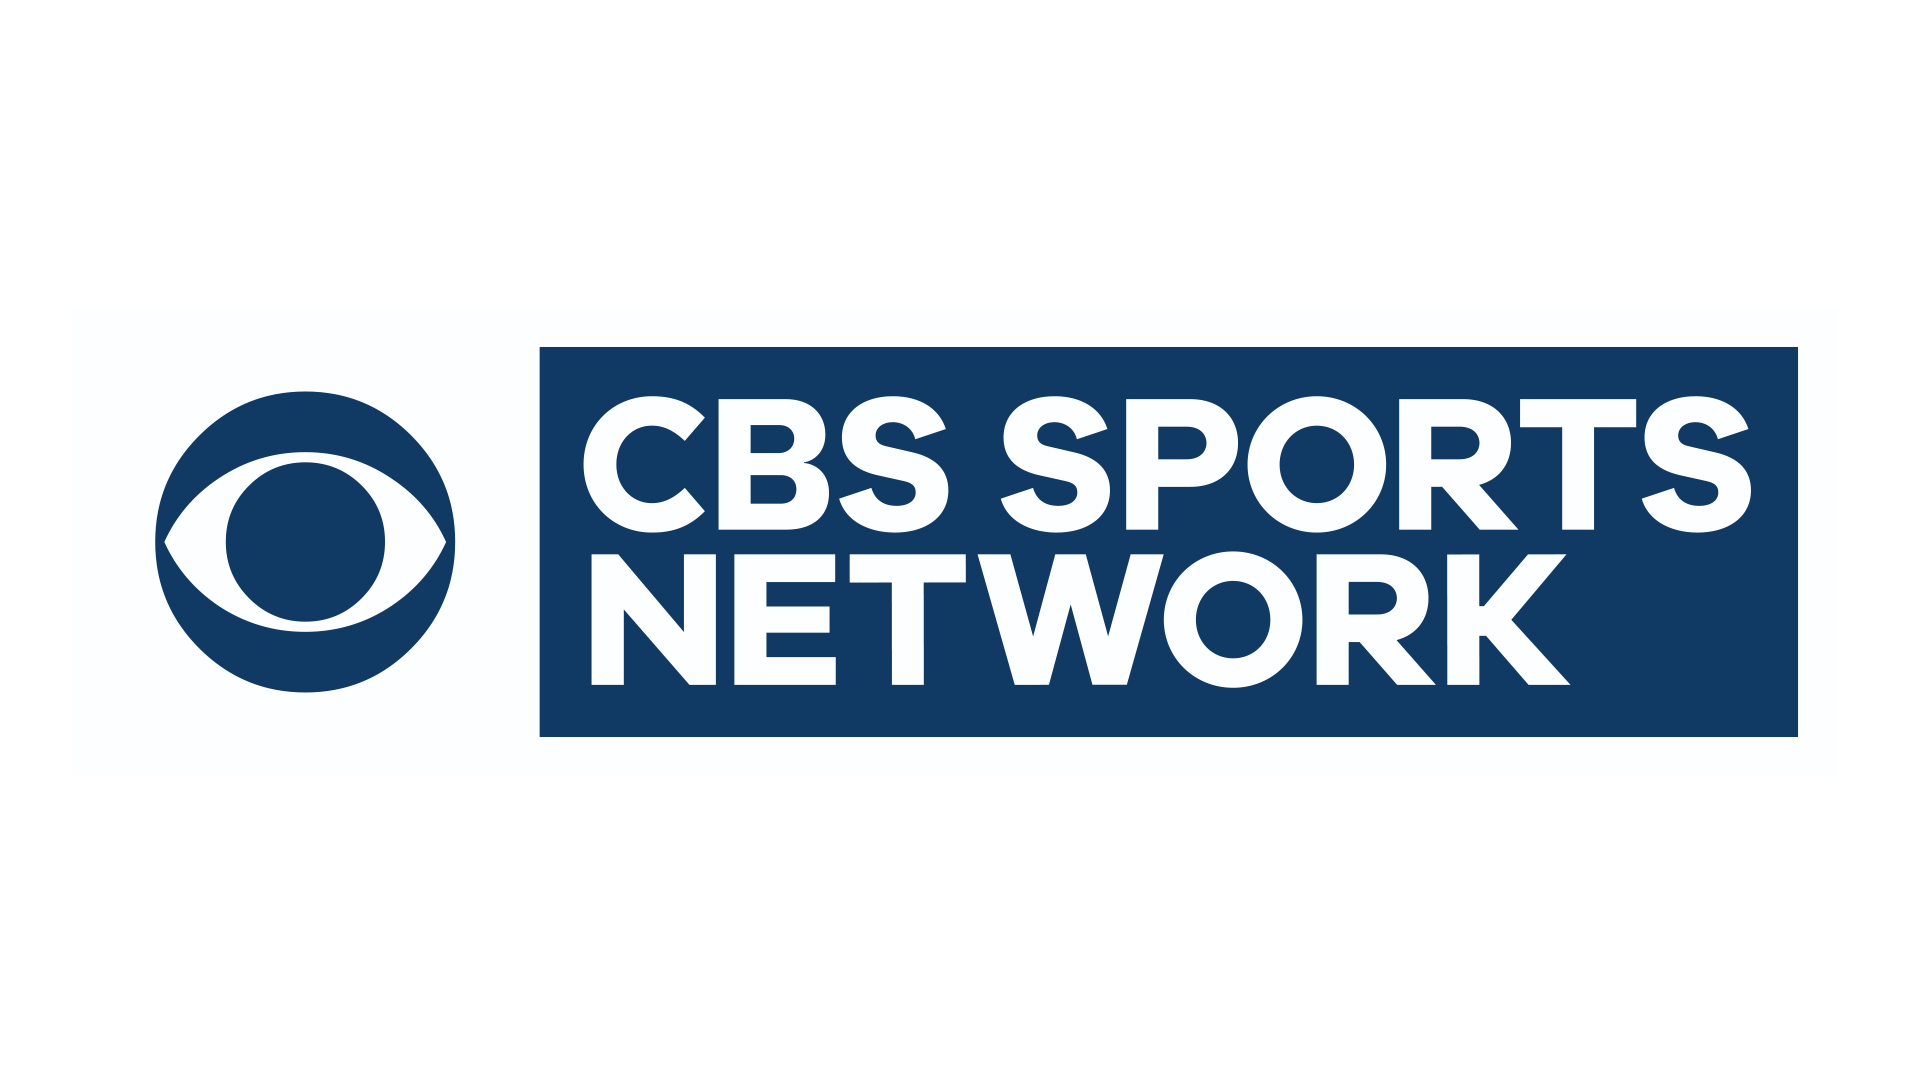 Viacomcbs Press Express Cbs Sports Network Delivers Action Packed Bracket Week With Multiple Automatic Bids Awarded To Men S And Women S Ncaa Tournaments